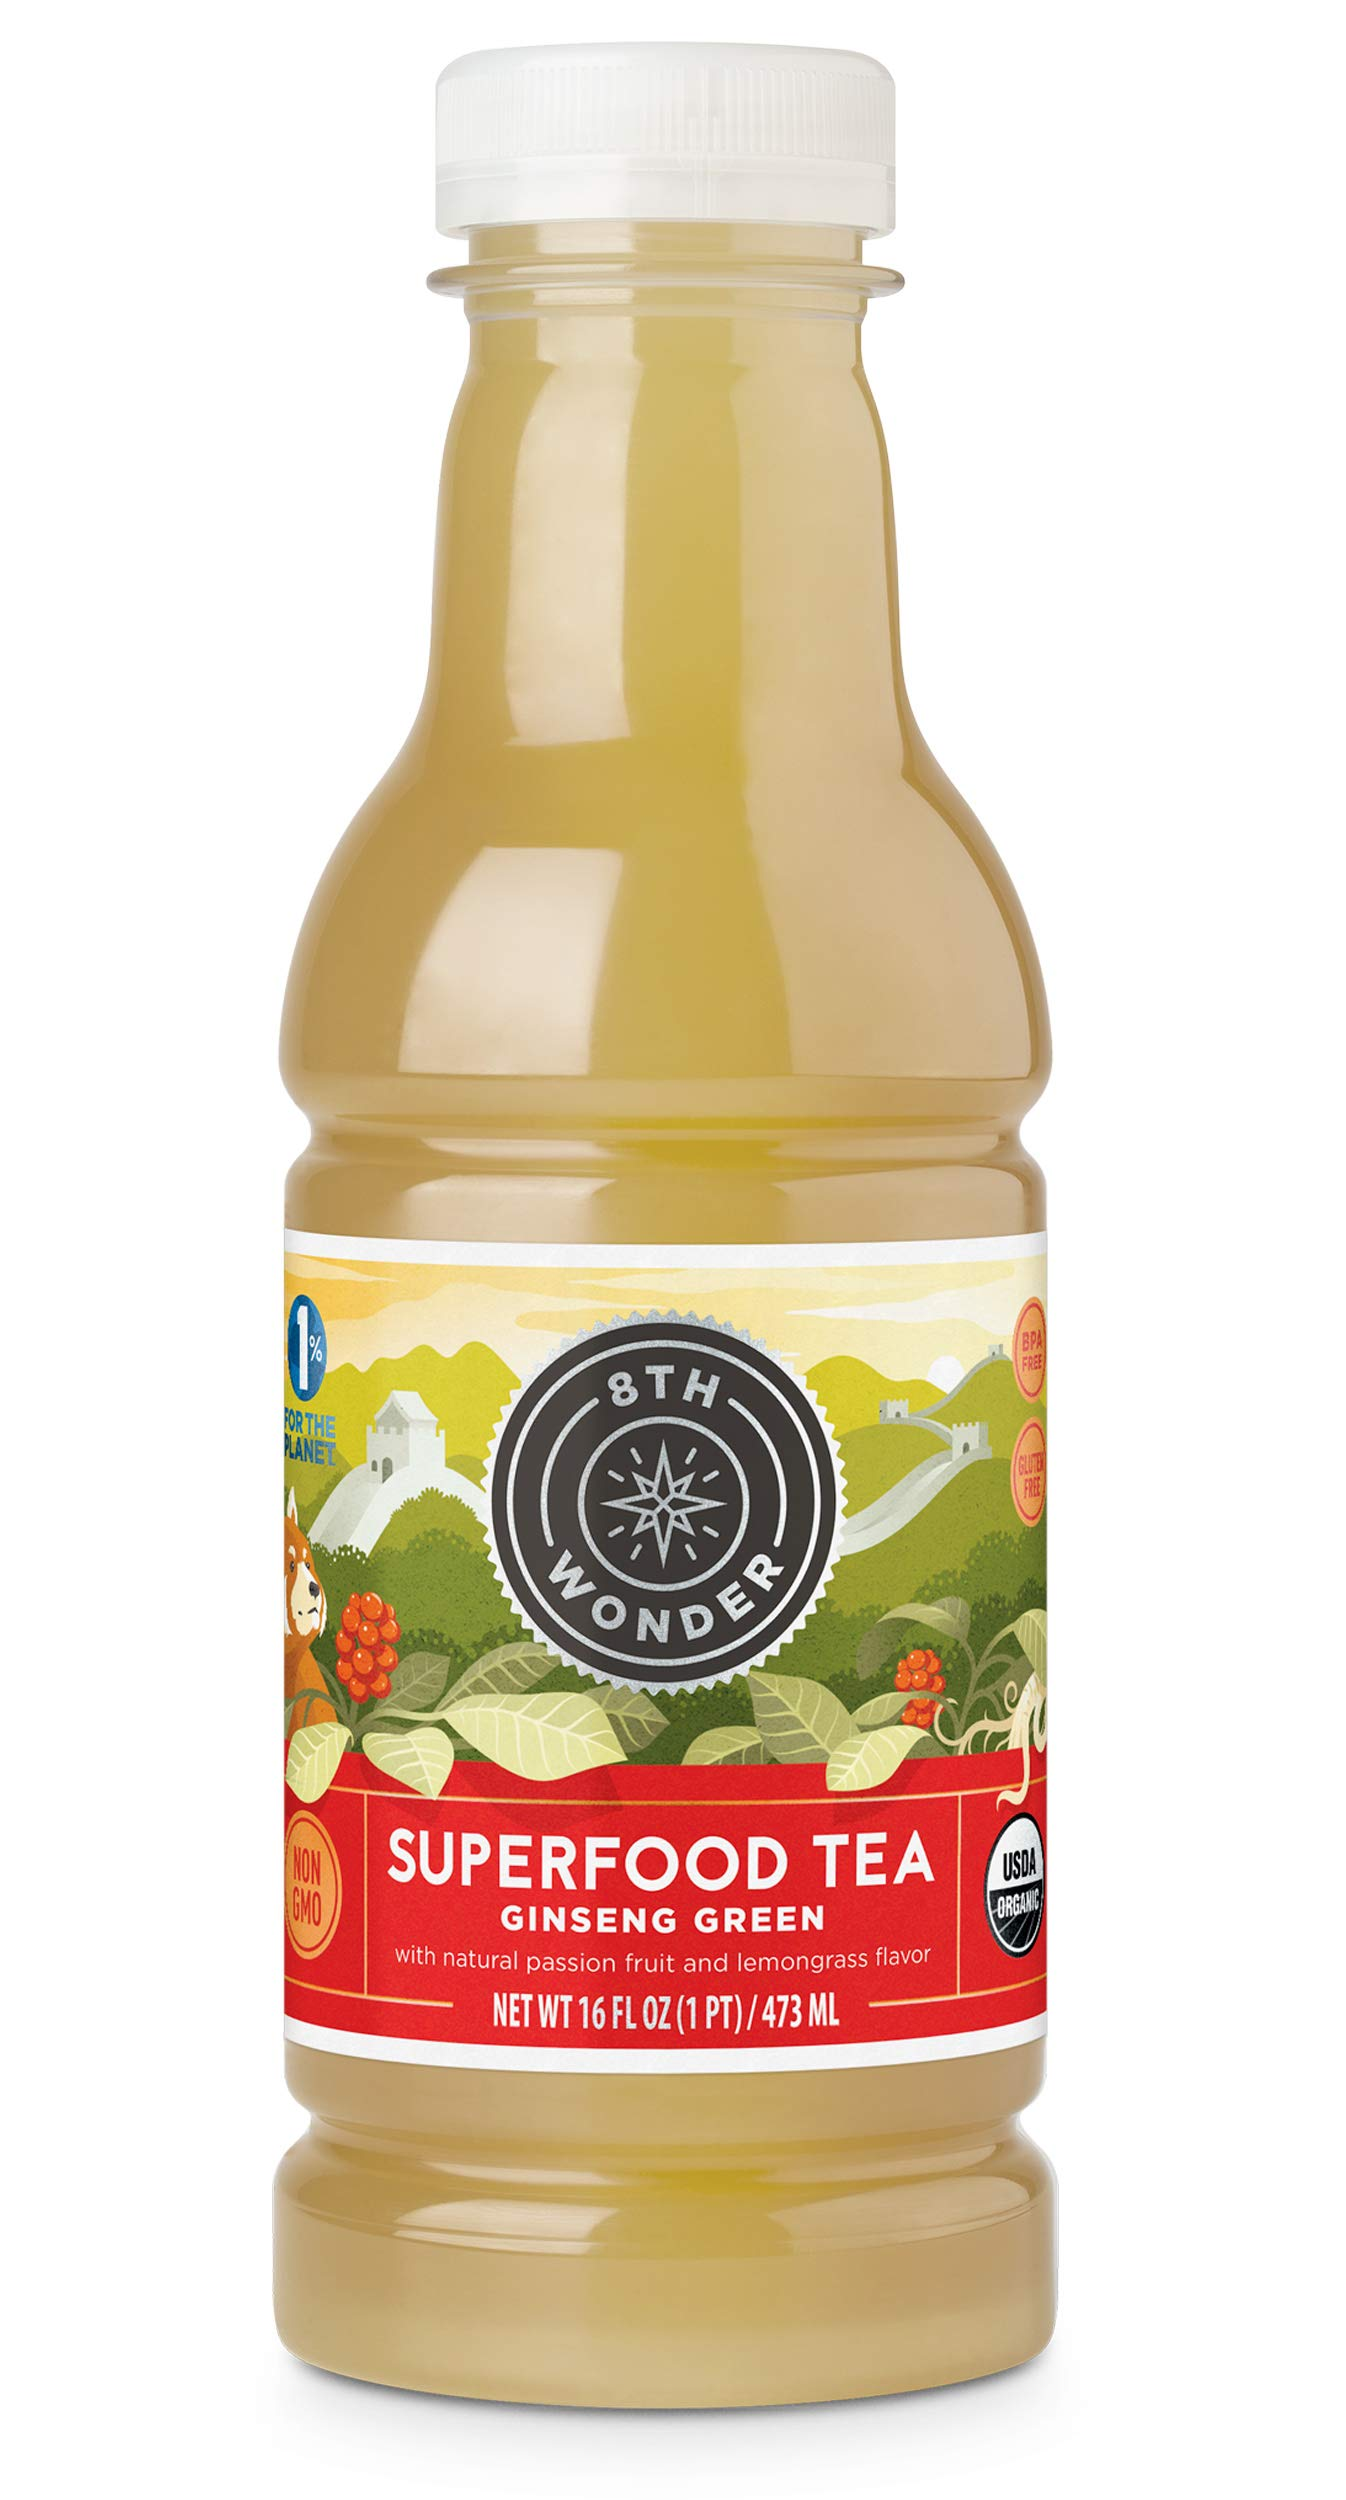 8th Wonder Organic Green Tea, All Natural, Low Calorie Superfood Iced Tea   Ginseng Passion Green Tea   16 Fluid Ounce Bottled Iced Tea Pack of 6   Boost Energy, Reduce Fatigue, Improve Brain Function